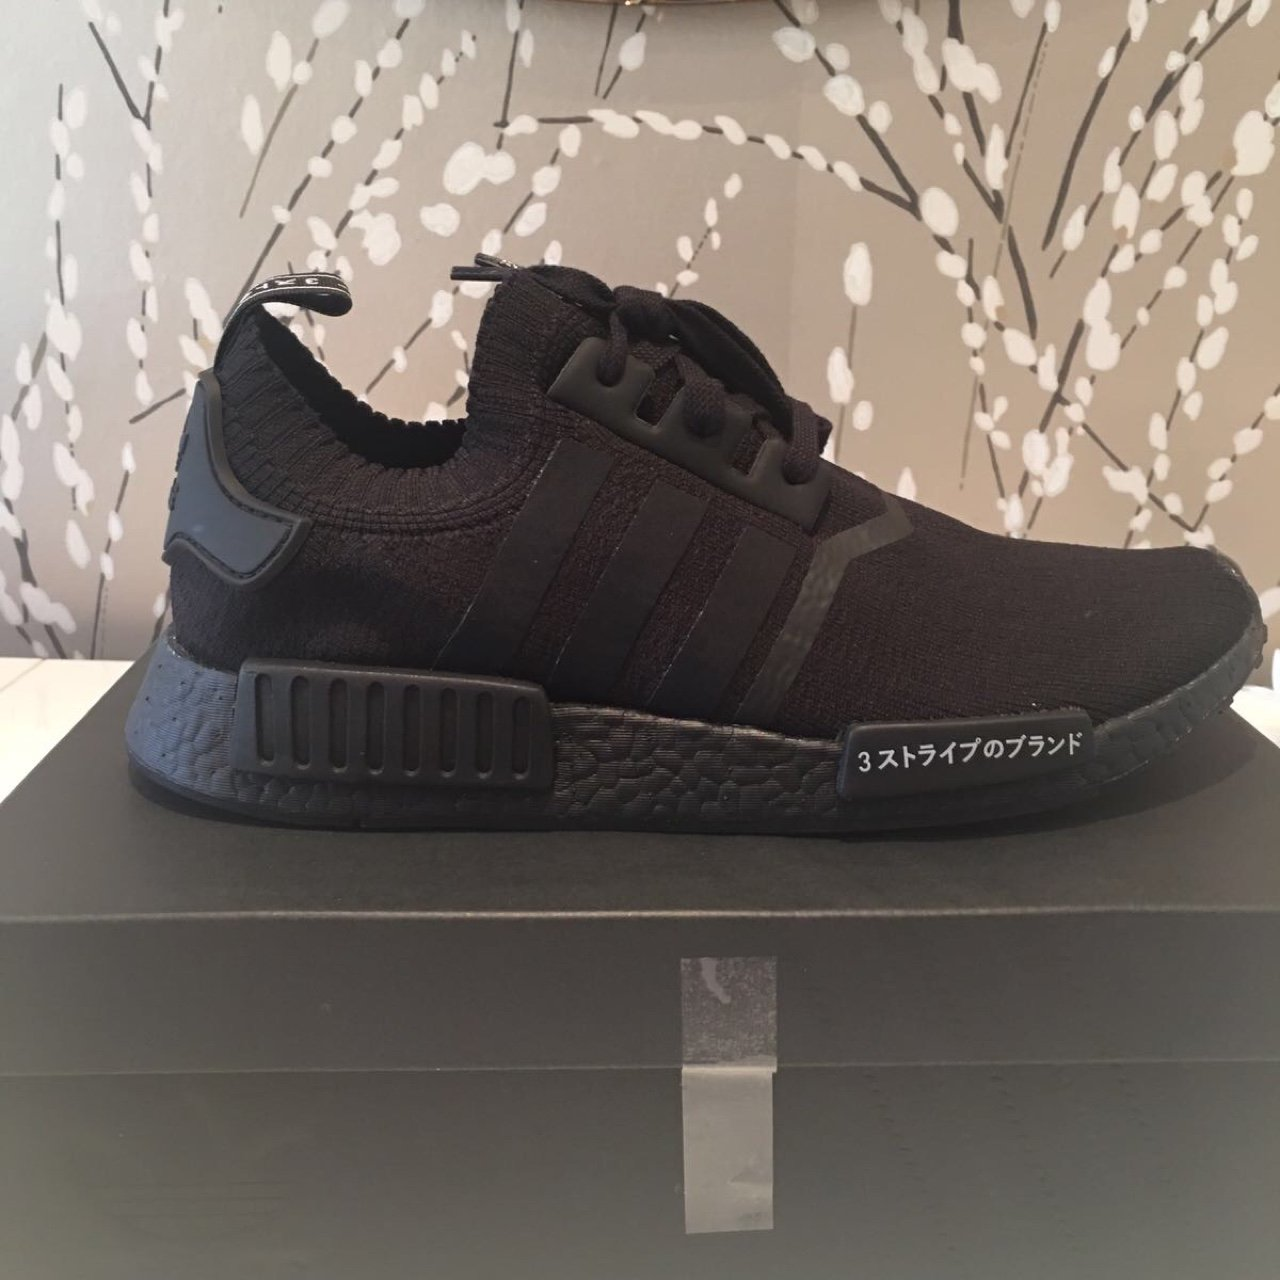 8d78ad7e20ab Adidas NMD R1 Primeknit Japan Triple Black Japan Boost UK 9 - Depop